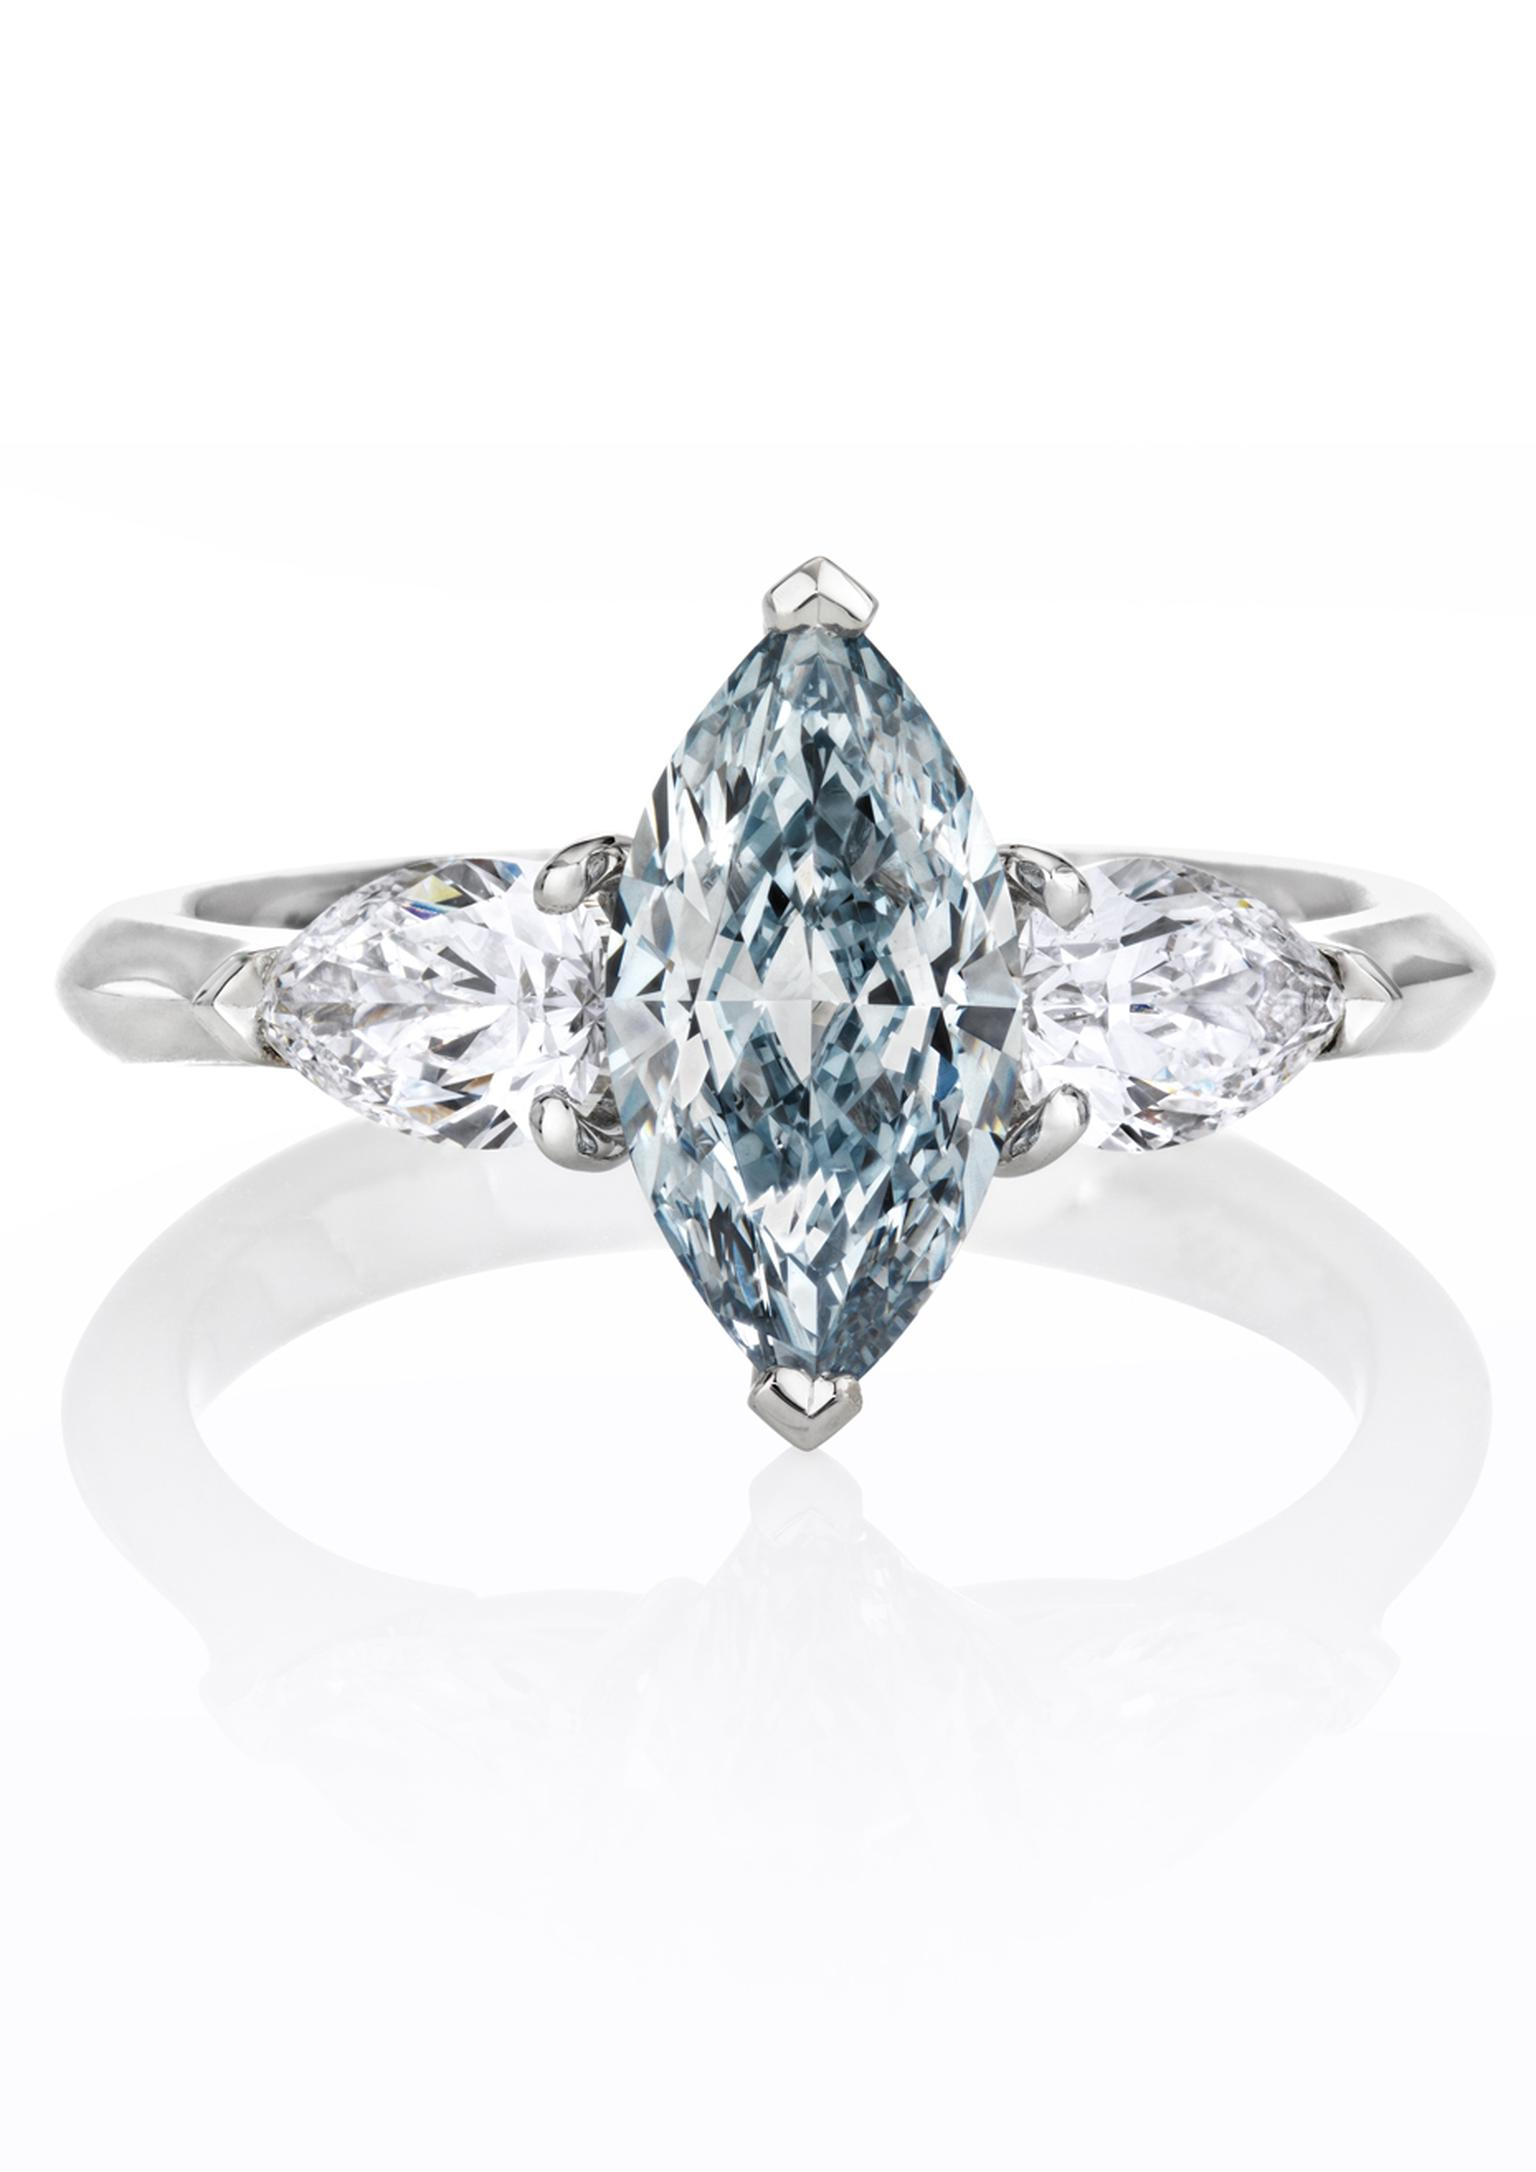 De Beers marquise-cut blue diamond engagement ring flanked by white diamonds.